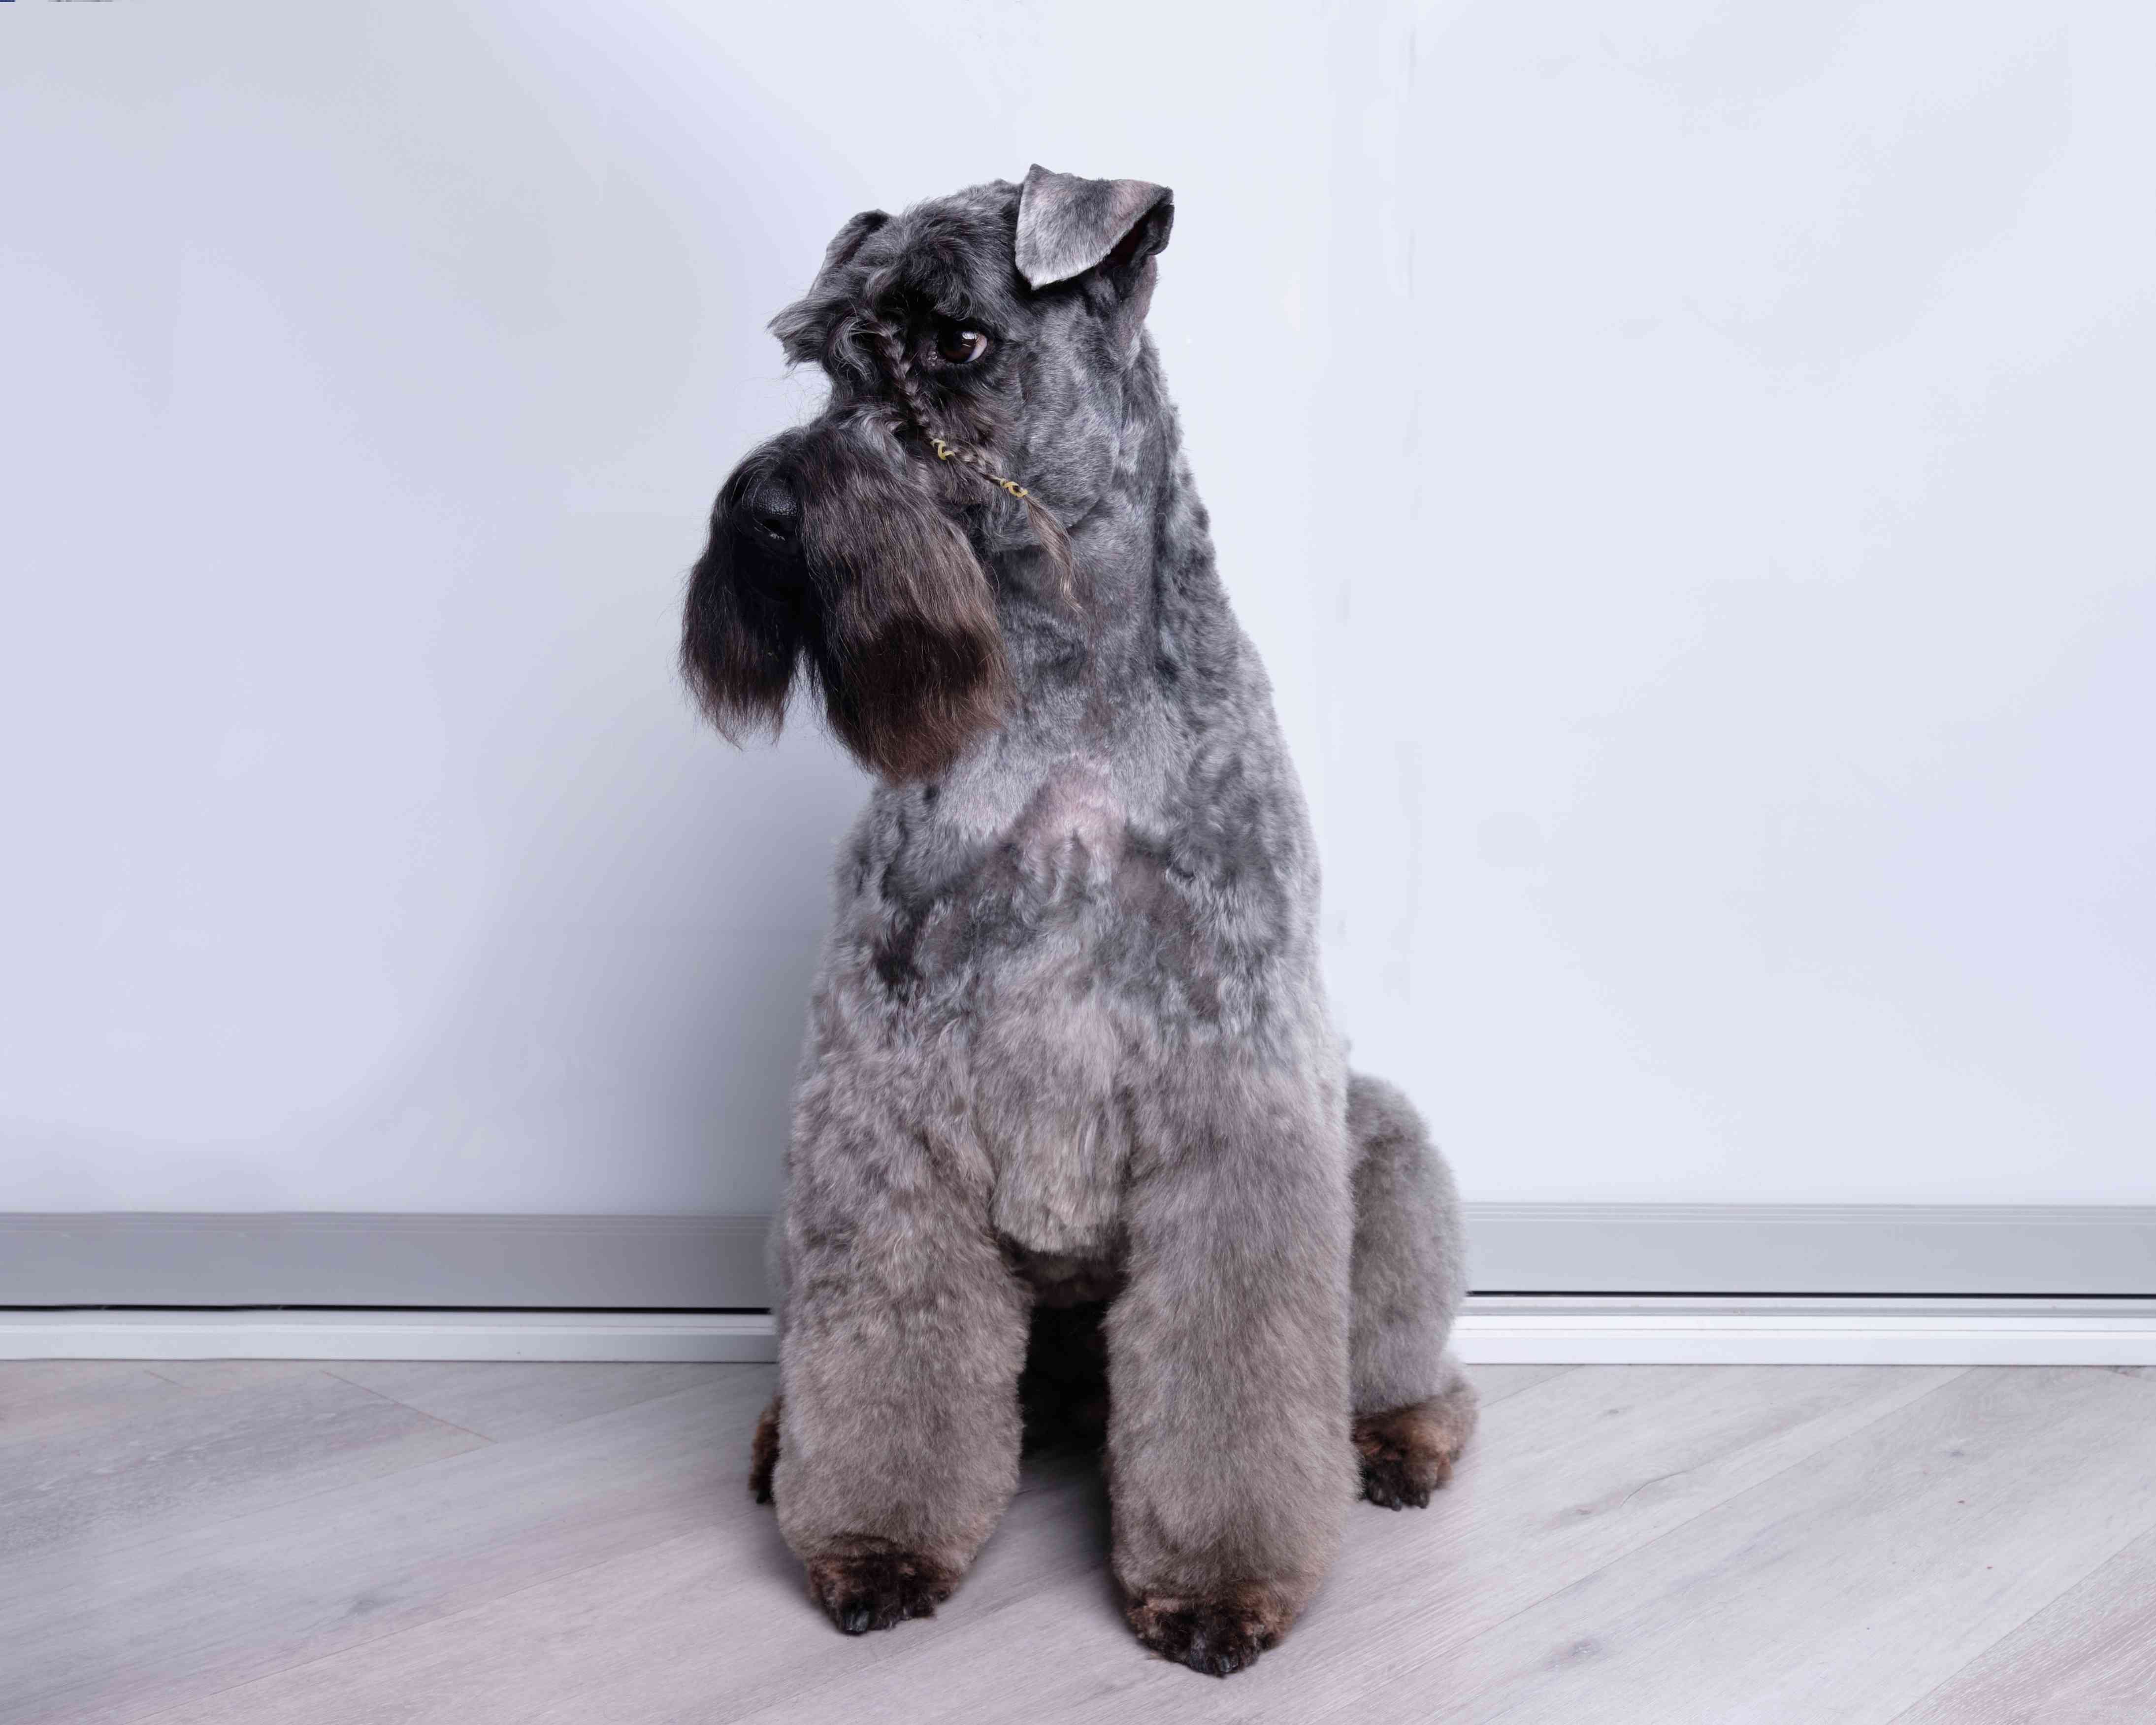 Kerry blue terrier show dog after grooming demonstrates his haircut. breed representative